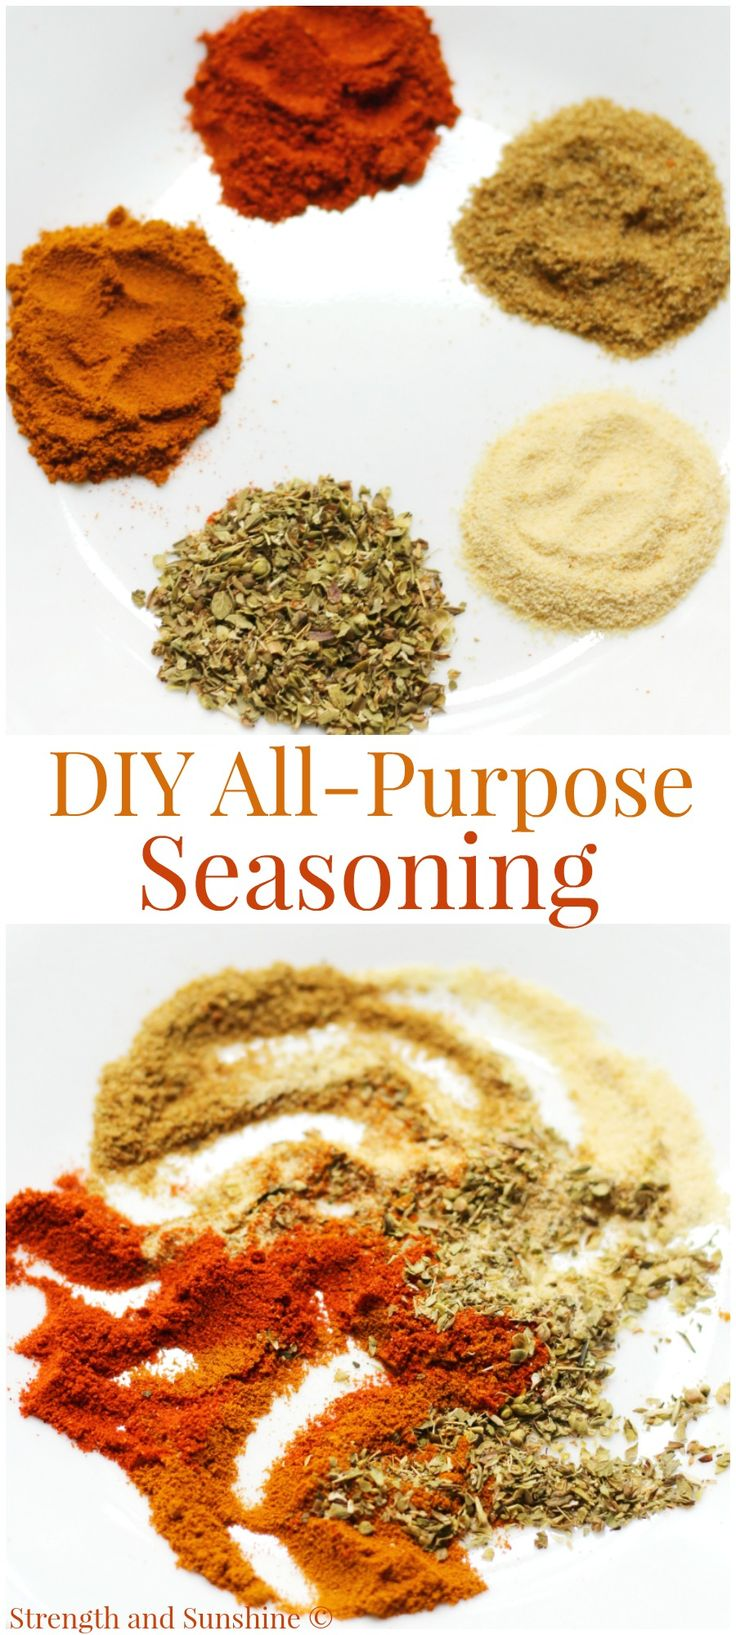 DIY All-Purpose Seasoning + Pantry Supplies Storage Hacks   Strength and Sunshine @RebeccaGF666 A perfect DIY All-Purpose Seasoning recipe, gluten-free, salt and sugar-free, that will spice up any dish! Plus some trendy hacks for traveling, transporting, storing and organizing all you small pantry cooking and baking essentials! #storagewithstyle #Pmedia @creativeoption  #ad